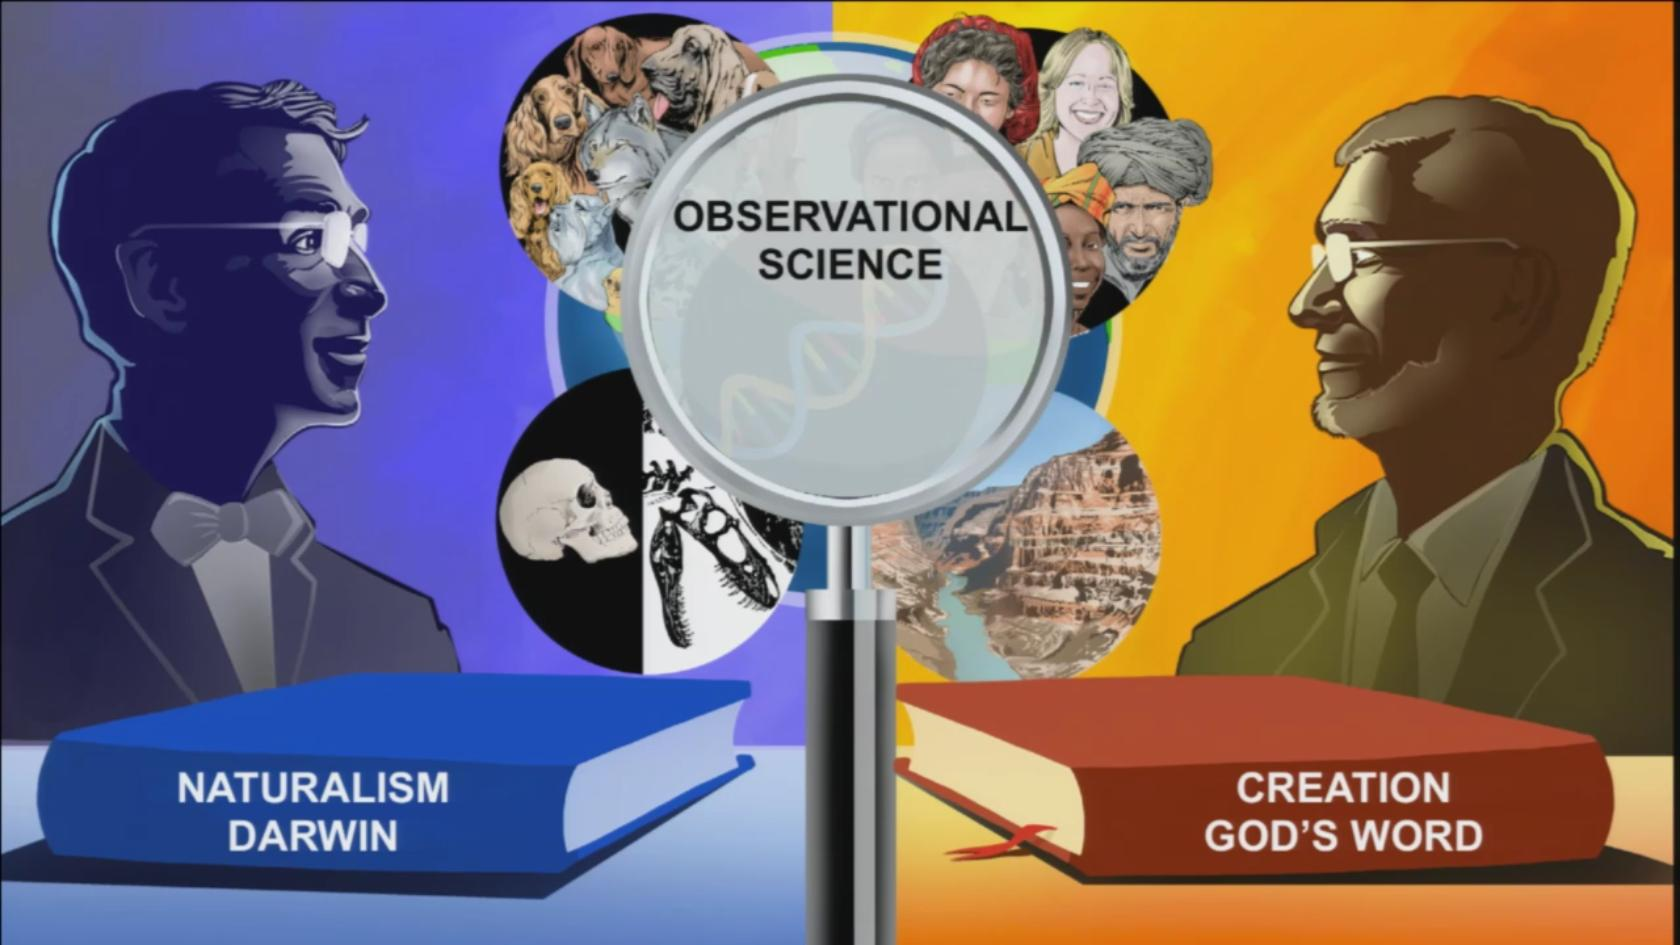 evolution vs creationism debate 22 messages from creationists to people who believe in evolution i asked 22 self-identifying creationists at the bill nye/ken ham debate to write a message/question/note to the other side.